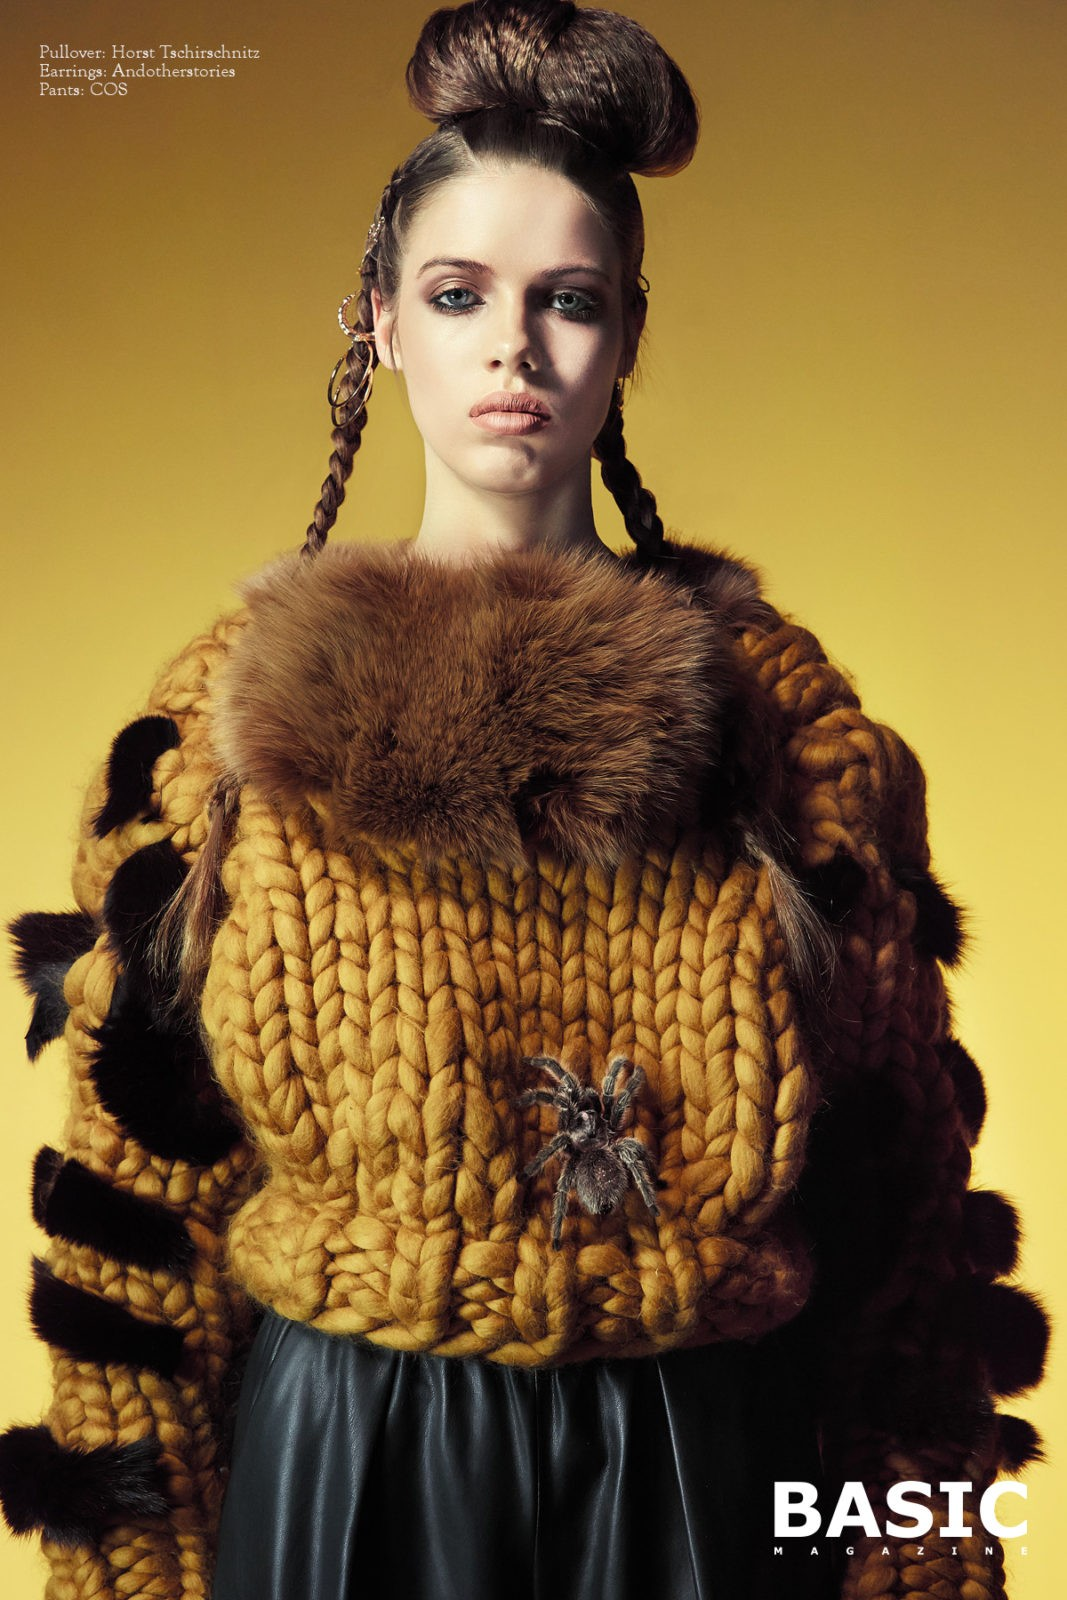 tamara hansen basic magazine wild things fashion (3)